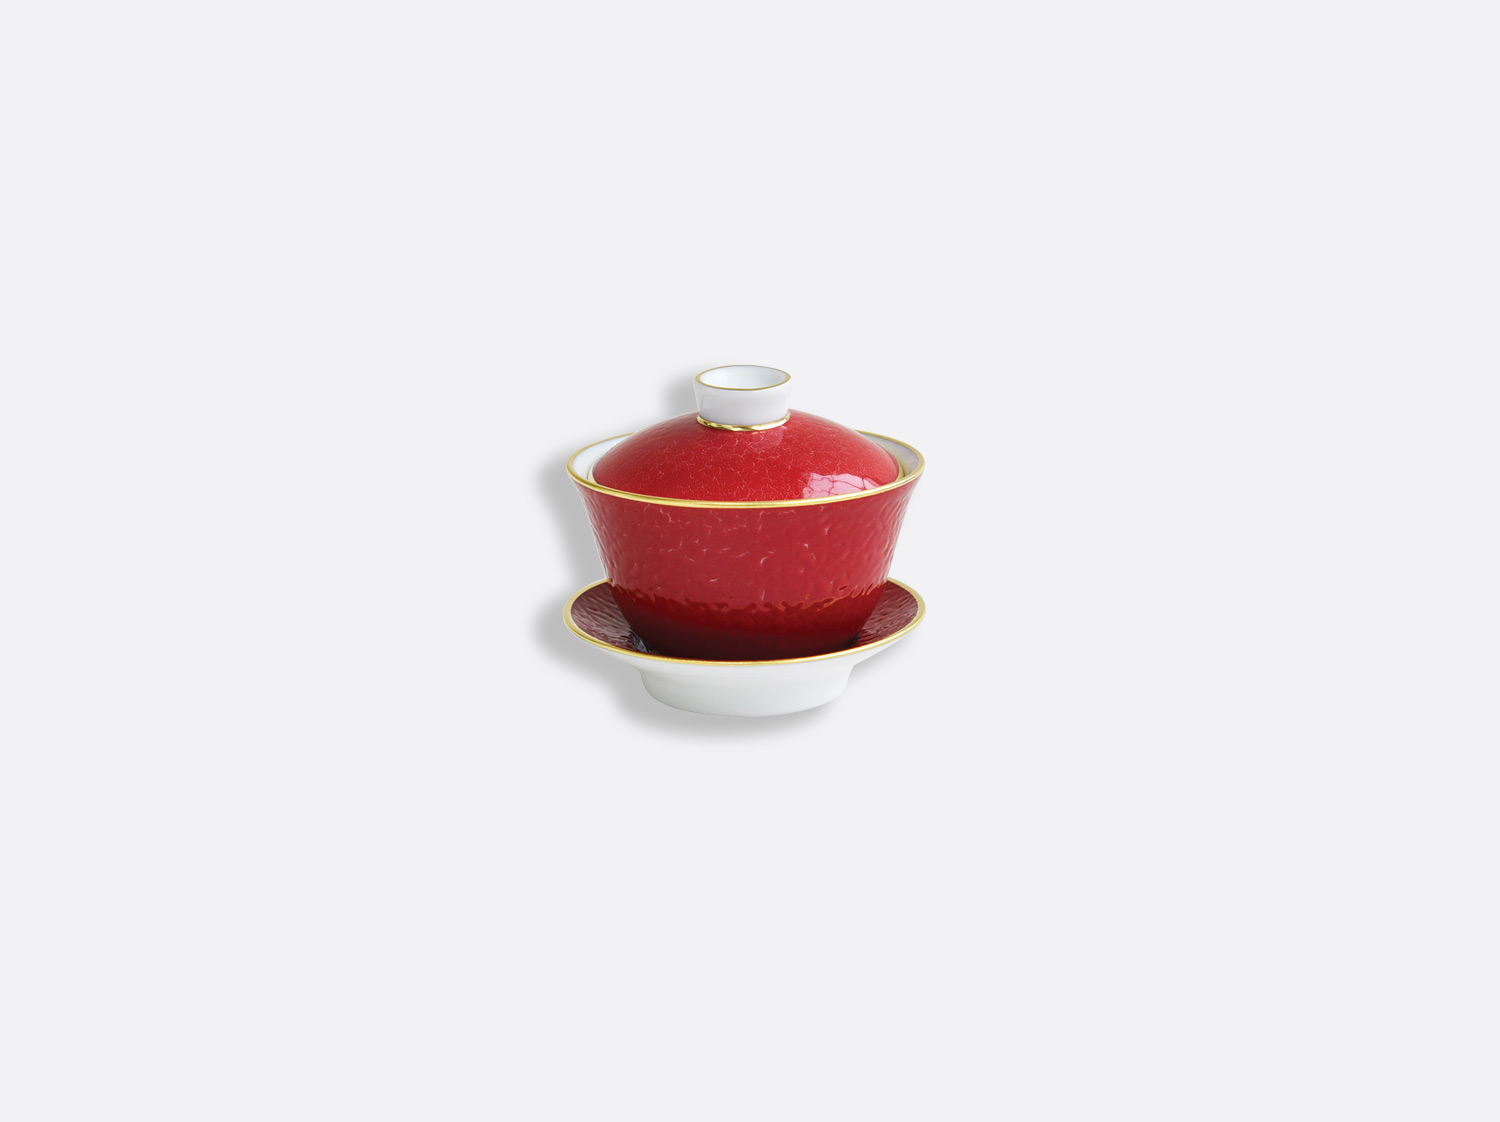 Petite tasse couverte 10 cl en porcelaine de la collection ROUGE EMPEREUR Bernardaud